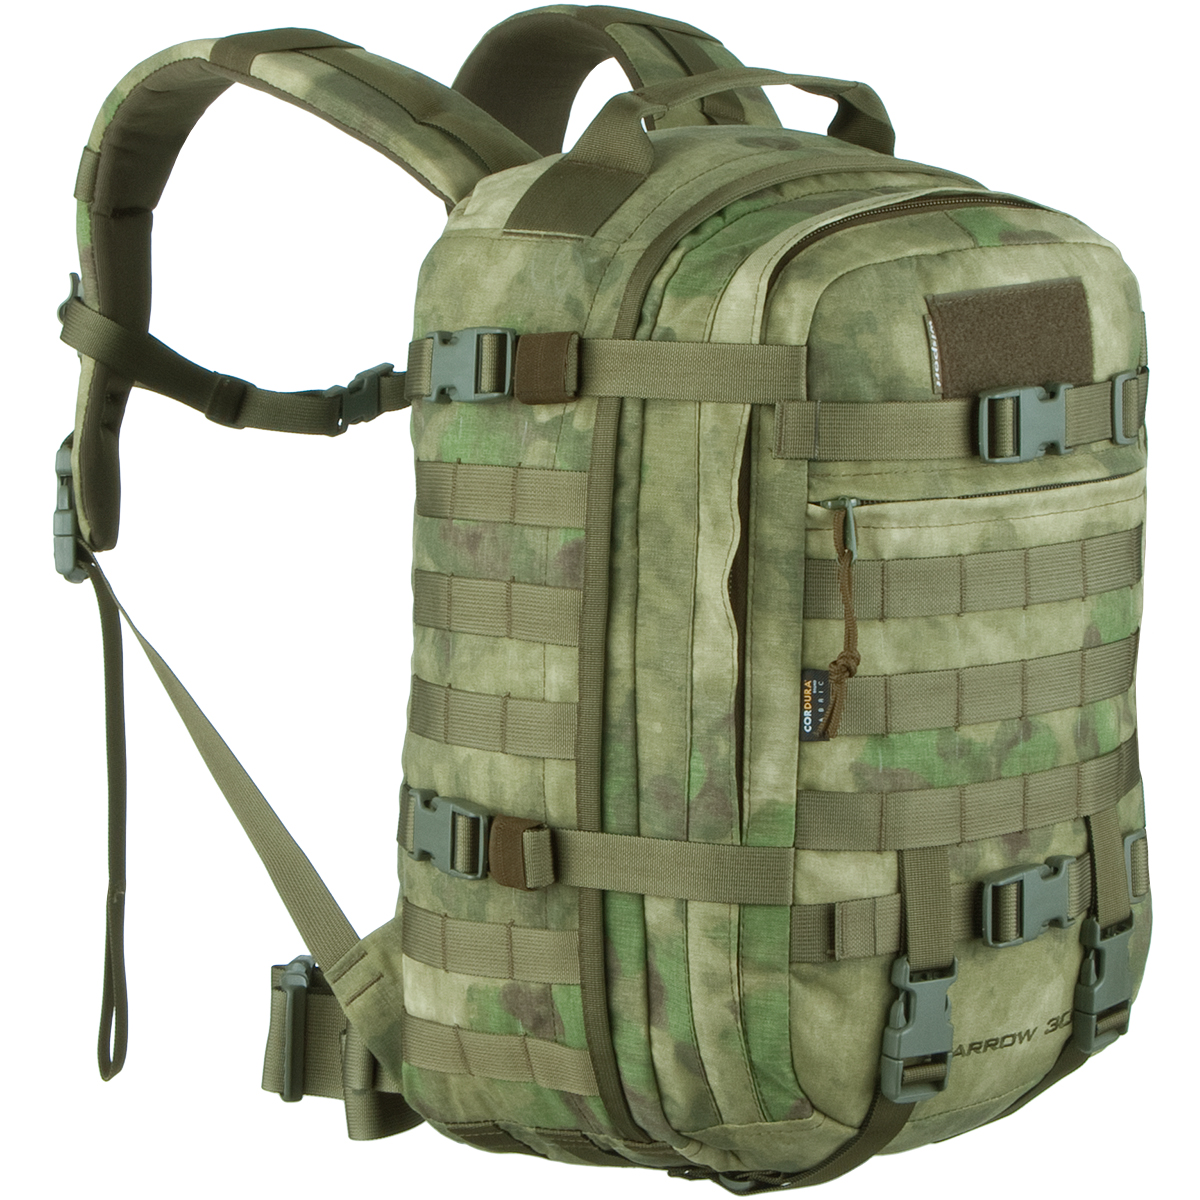 Military Camelbak Backpack - Top Reviewed Backpacks